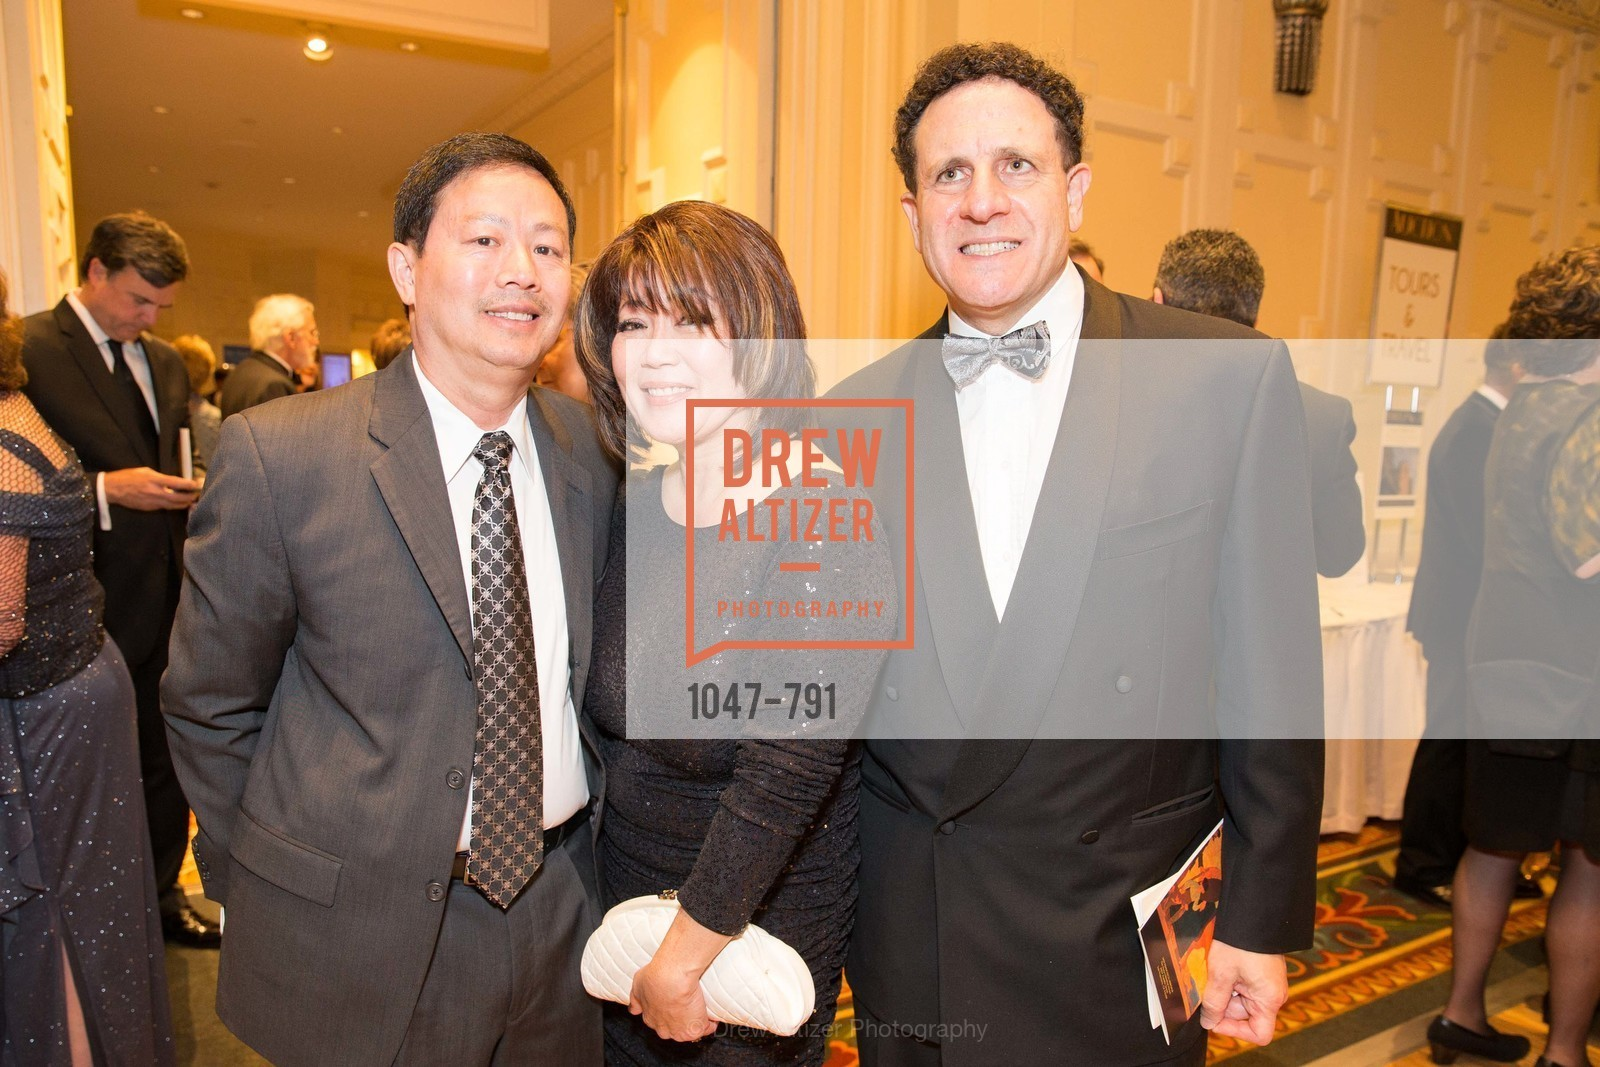 Harold Kan, Deanna Kan, SAN FRANCISCO HERITAGE Soiree 2015, US, April 19th, 2015,Drew Altizer, Drew Altizer Photography, full-service agency, private events, San Francisco photographer, photographer california